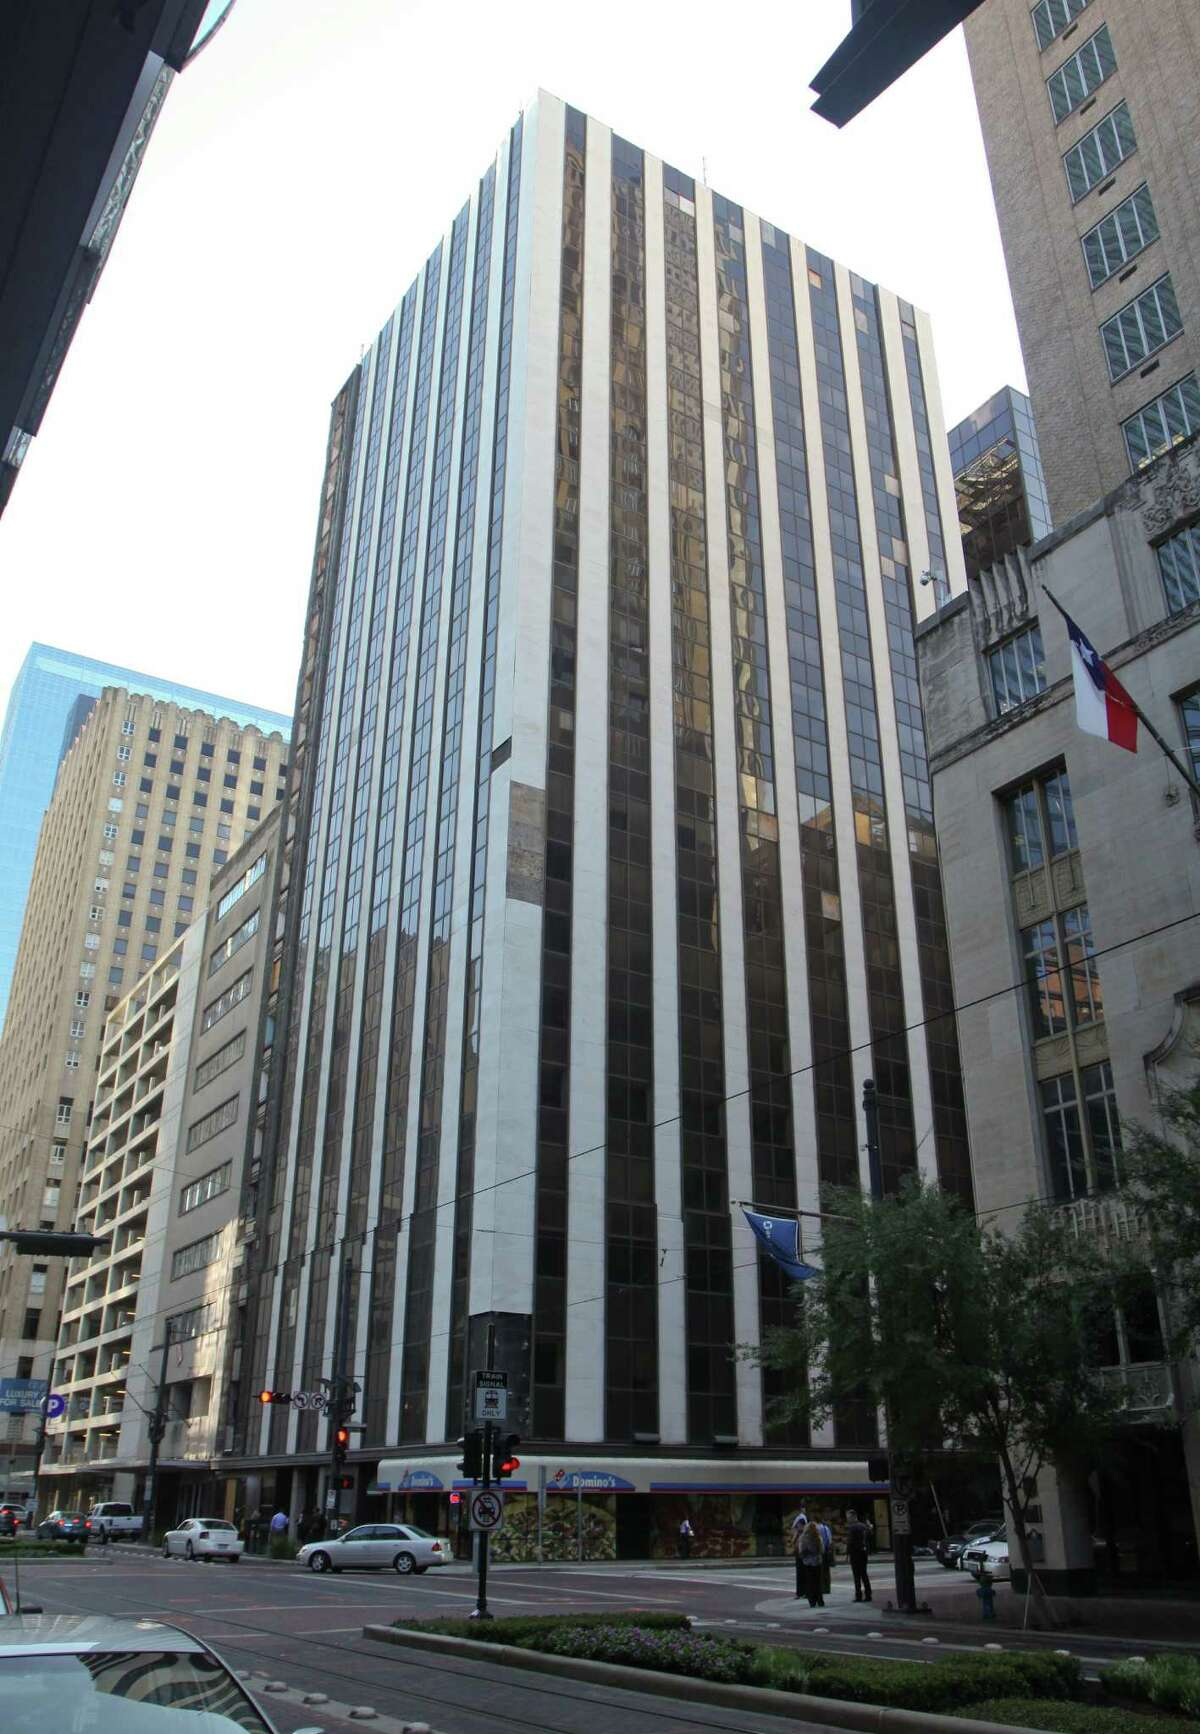 This building at 806 Main, which was built in 1910, was originally known as the Samuel F. Carter building. A developer wants to turn the 22-story tower into a JW Marriott hotel.